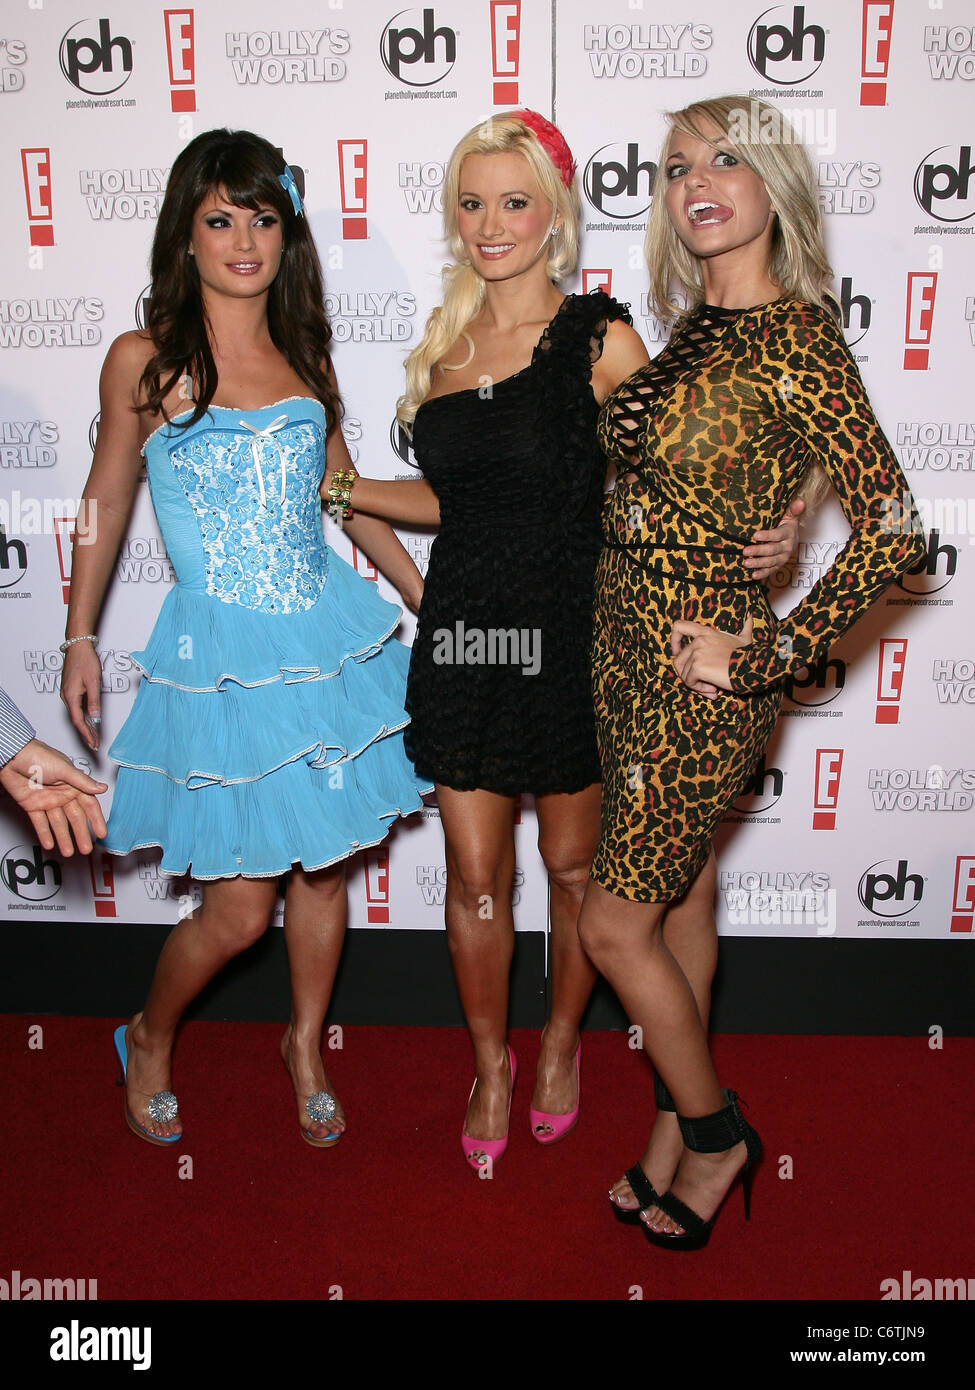 Angel From Holly's World laura croft, holly madison and angel porrino holly madison